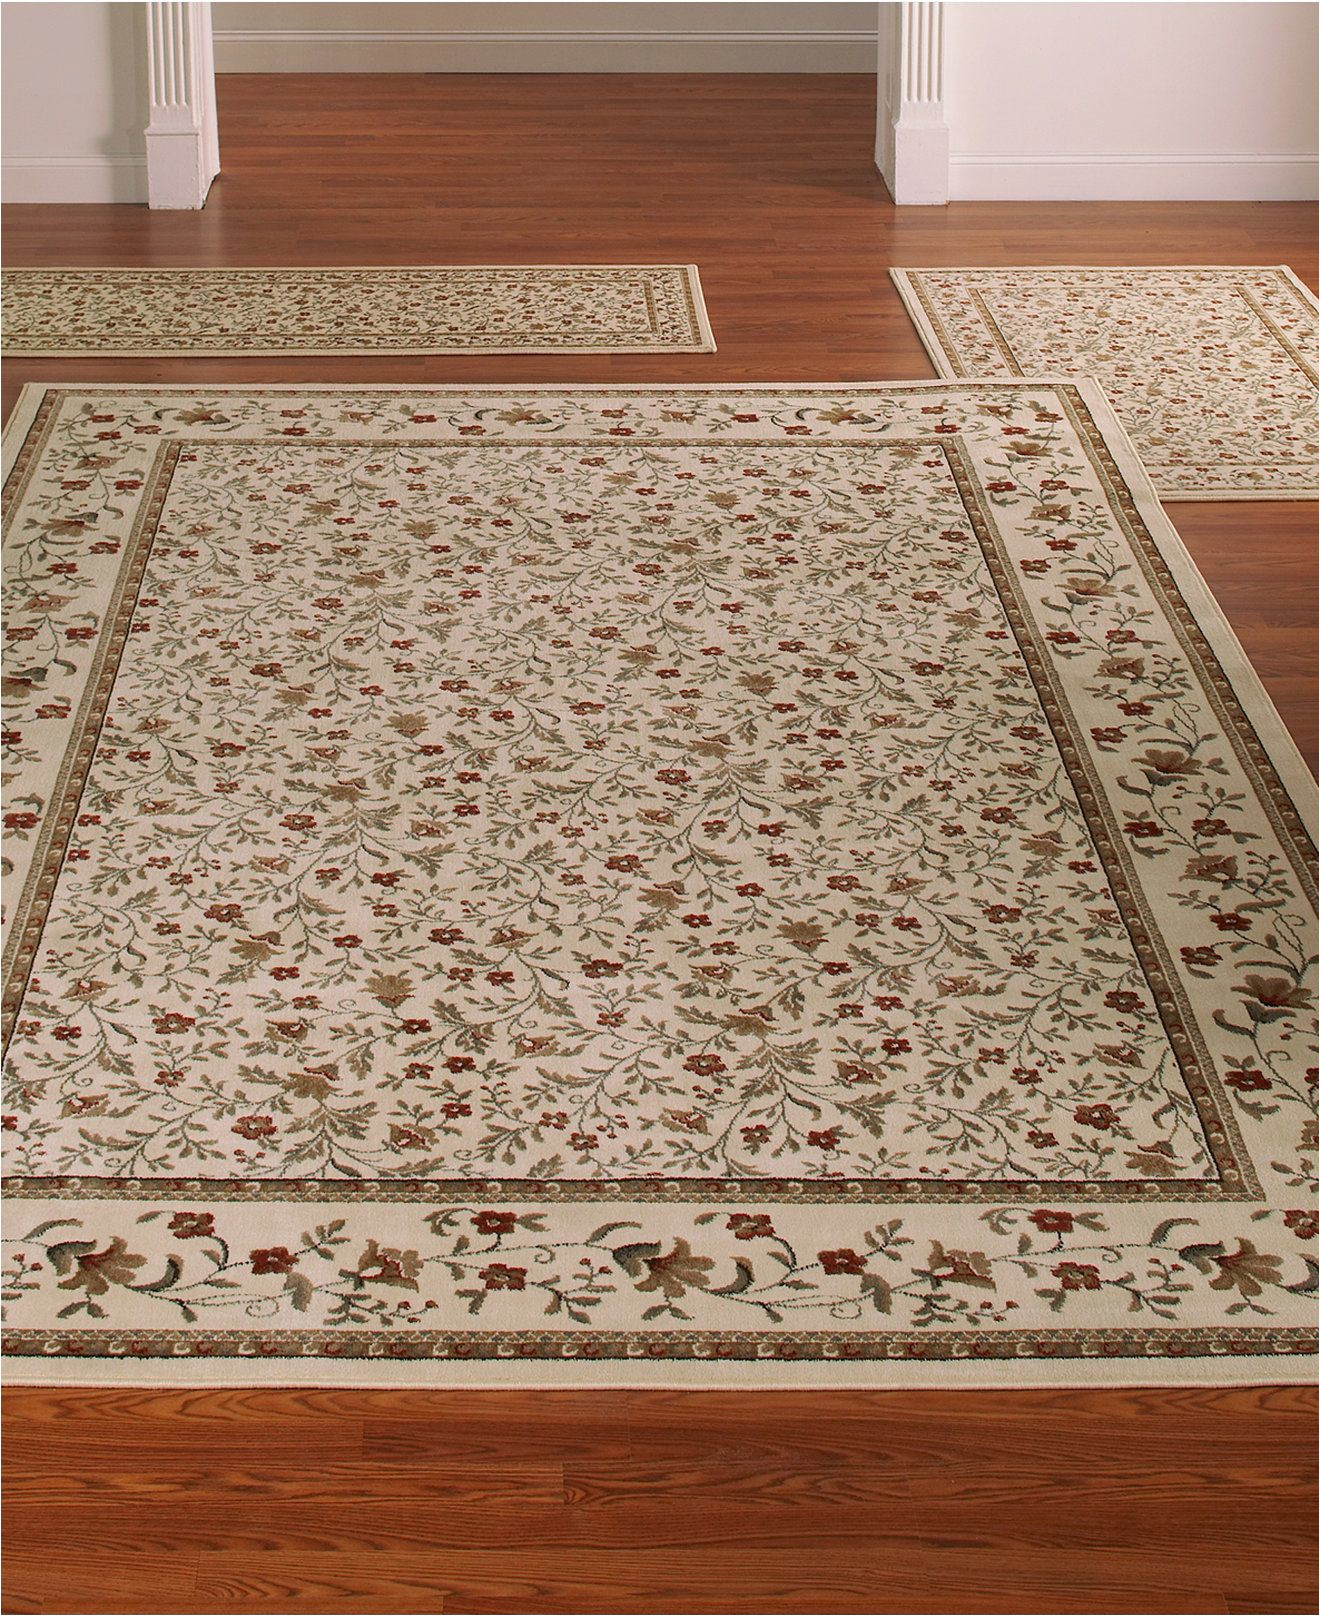 At Home area Rugs 8×10 area Rugs 8×10 Cheap area Rugs 8×10